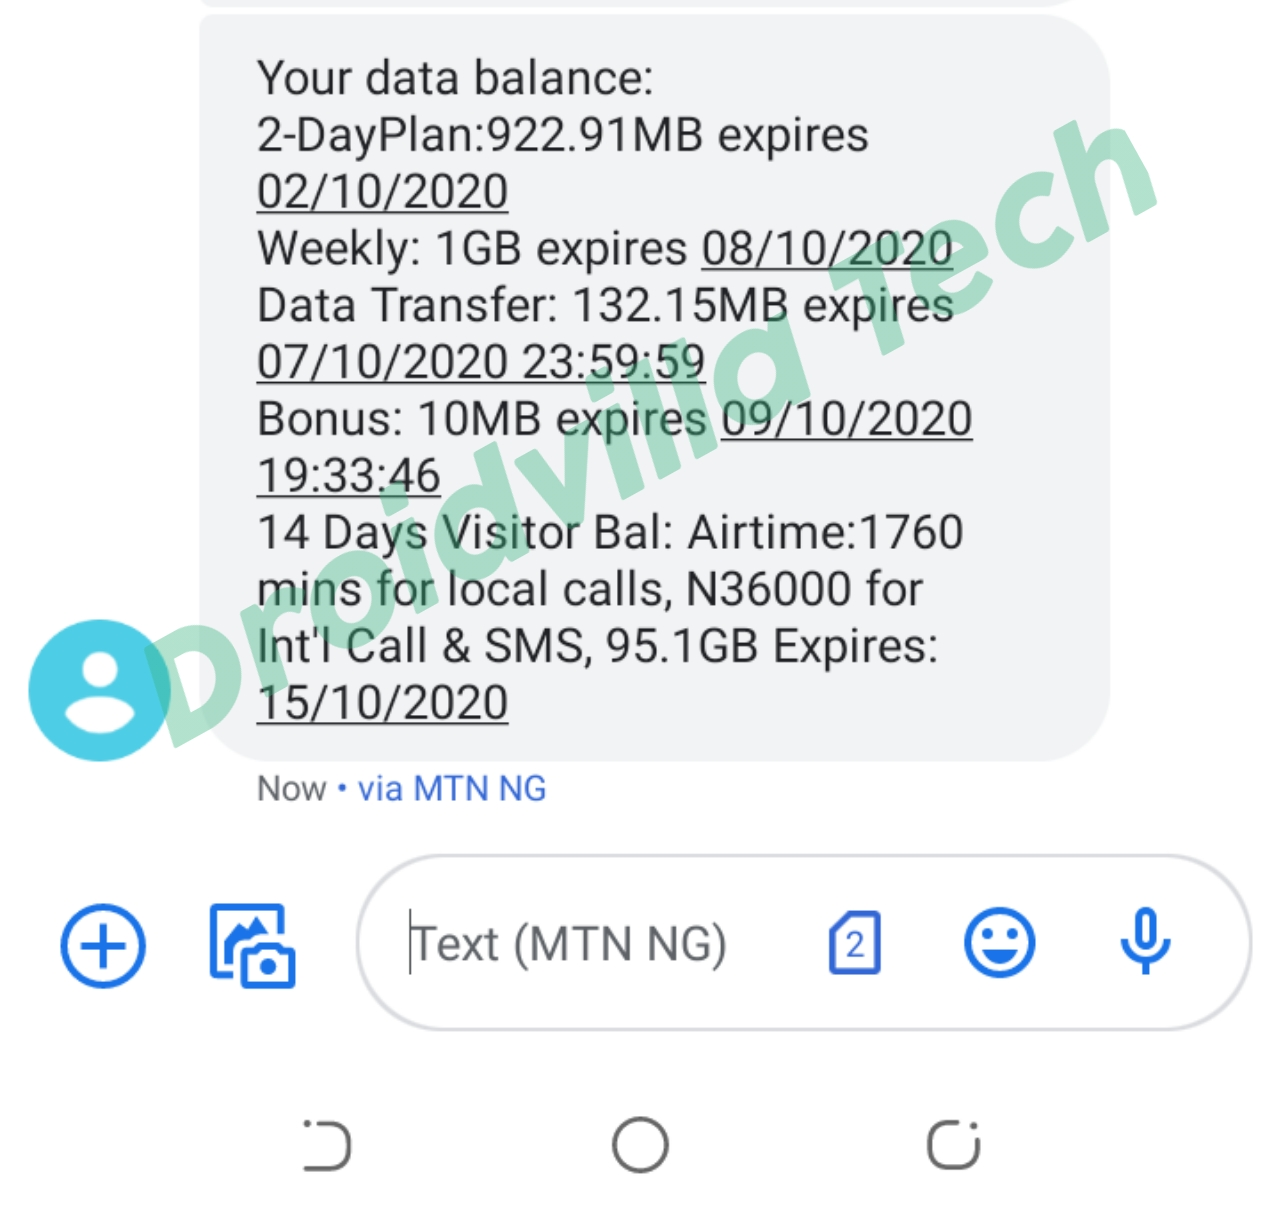 MTN 2020 Unlimited Data Cheat Accumulation Tweak Up To 100GB Free and Unlimited Airtime